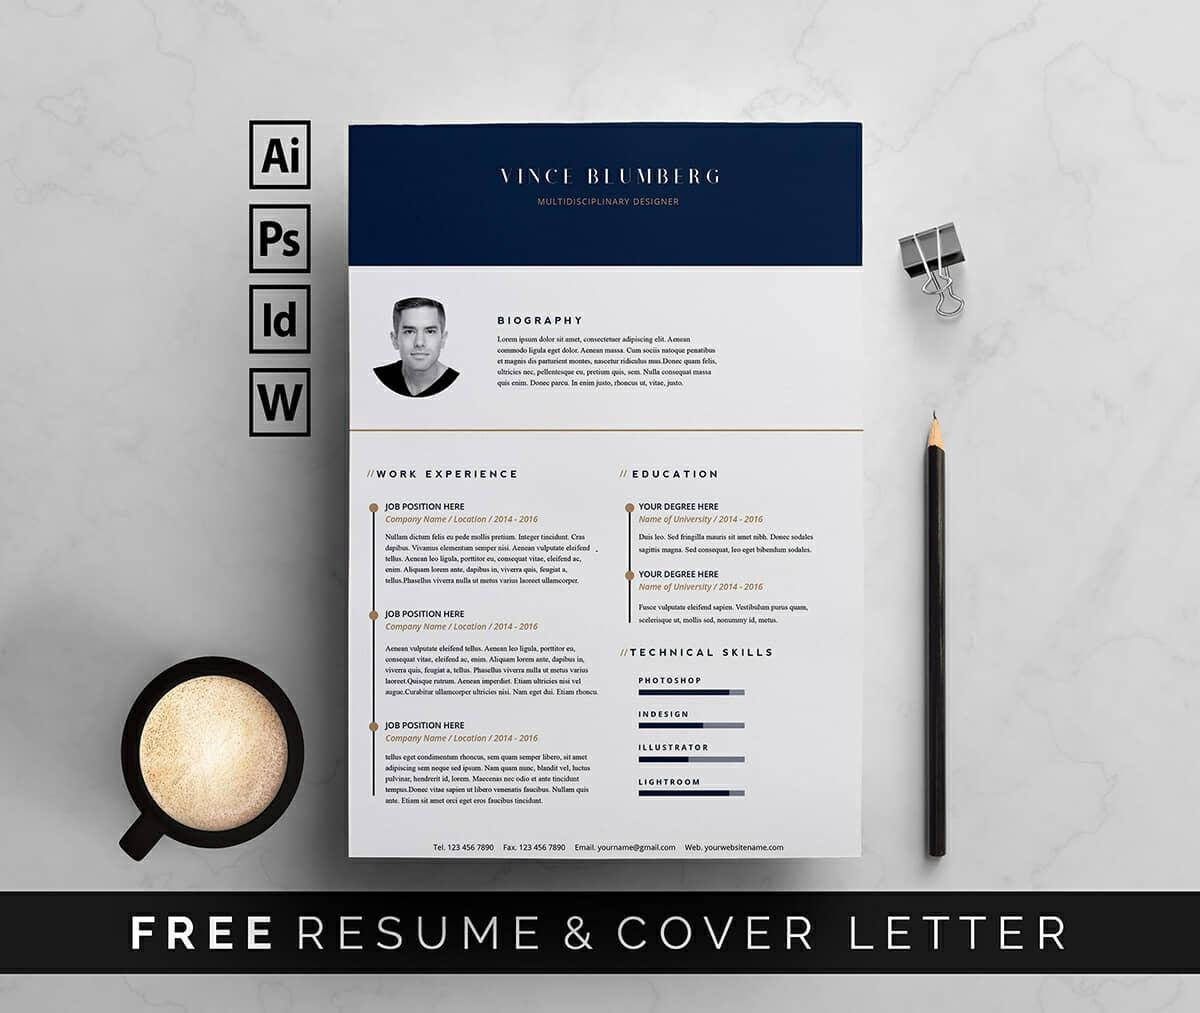 Superieur Free Elegant Resume Template For Word With Gold Details